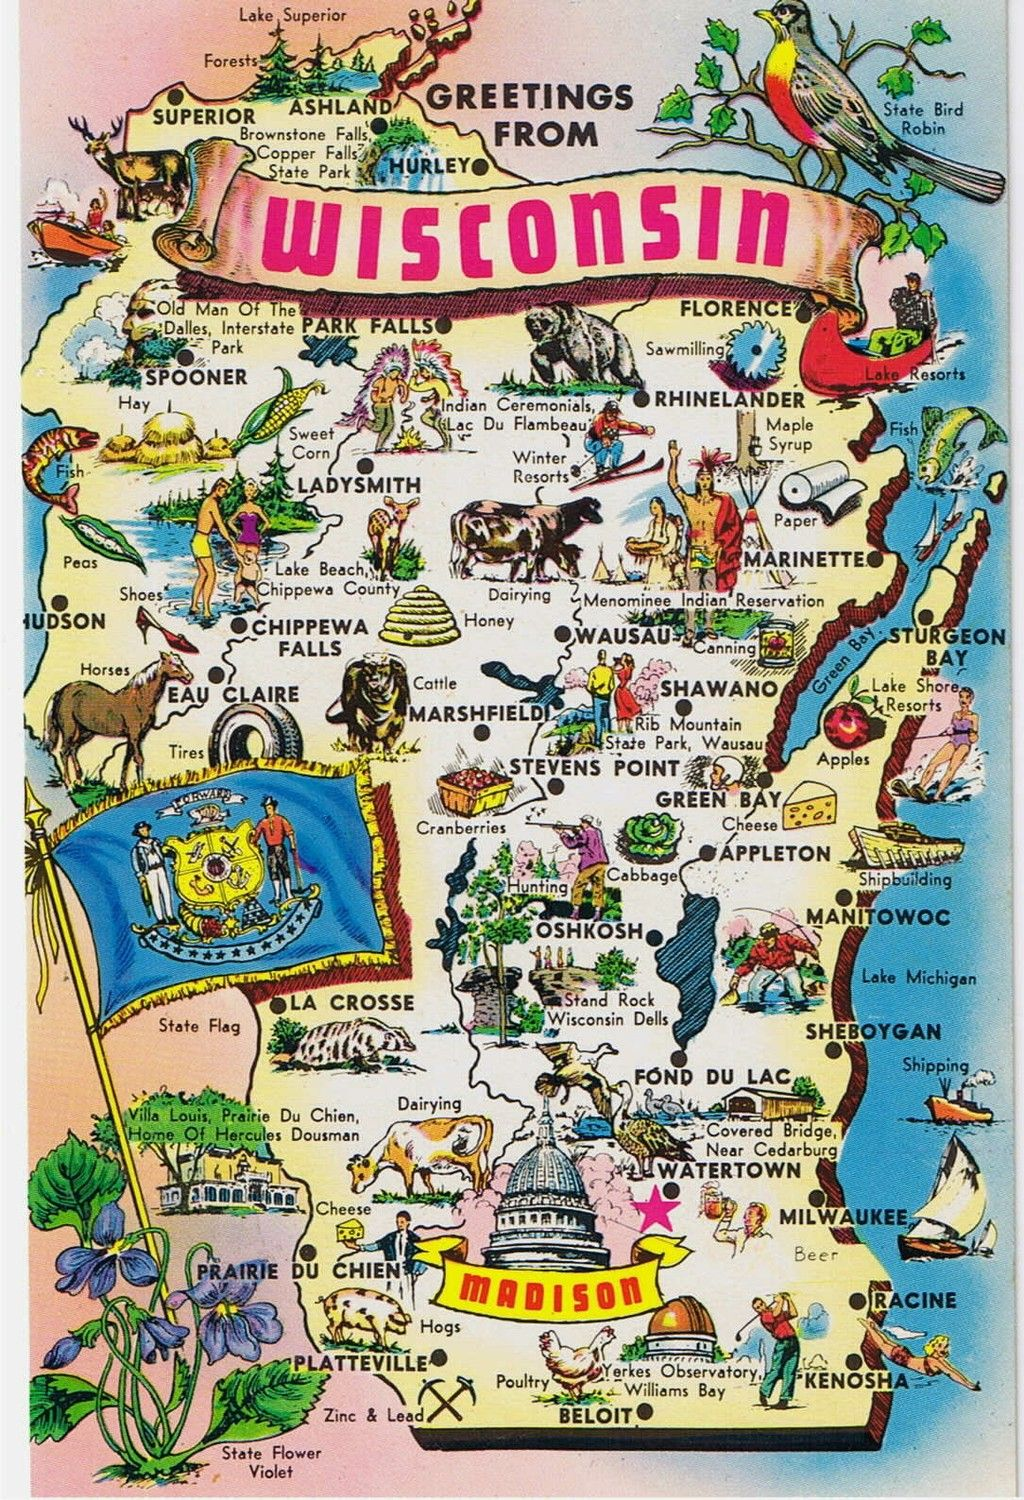 Vintage Postcards States Maps USA Wisconsin By Heritagepostcards - Wisconsin road map usa